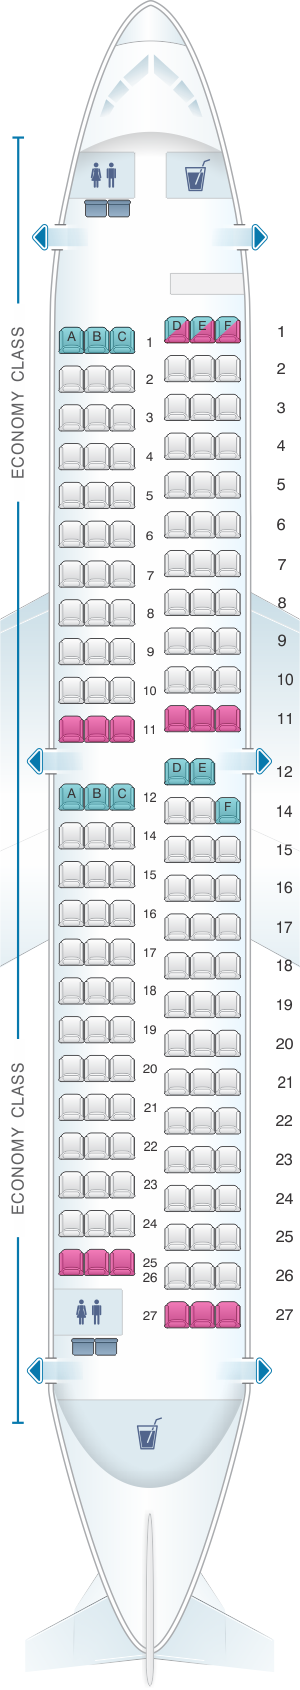 Seat map for Turkish Airlines Boeing B737 700